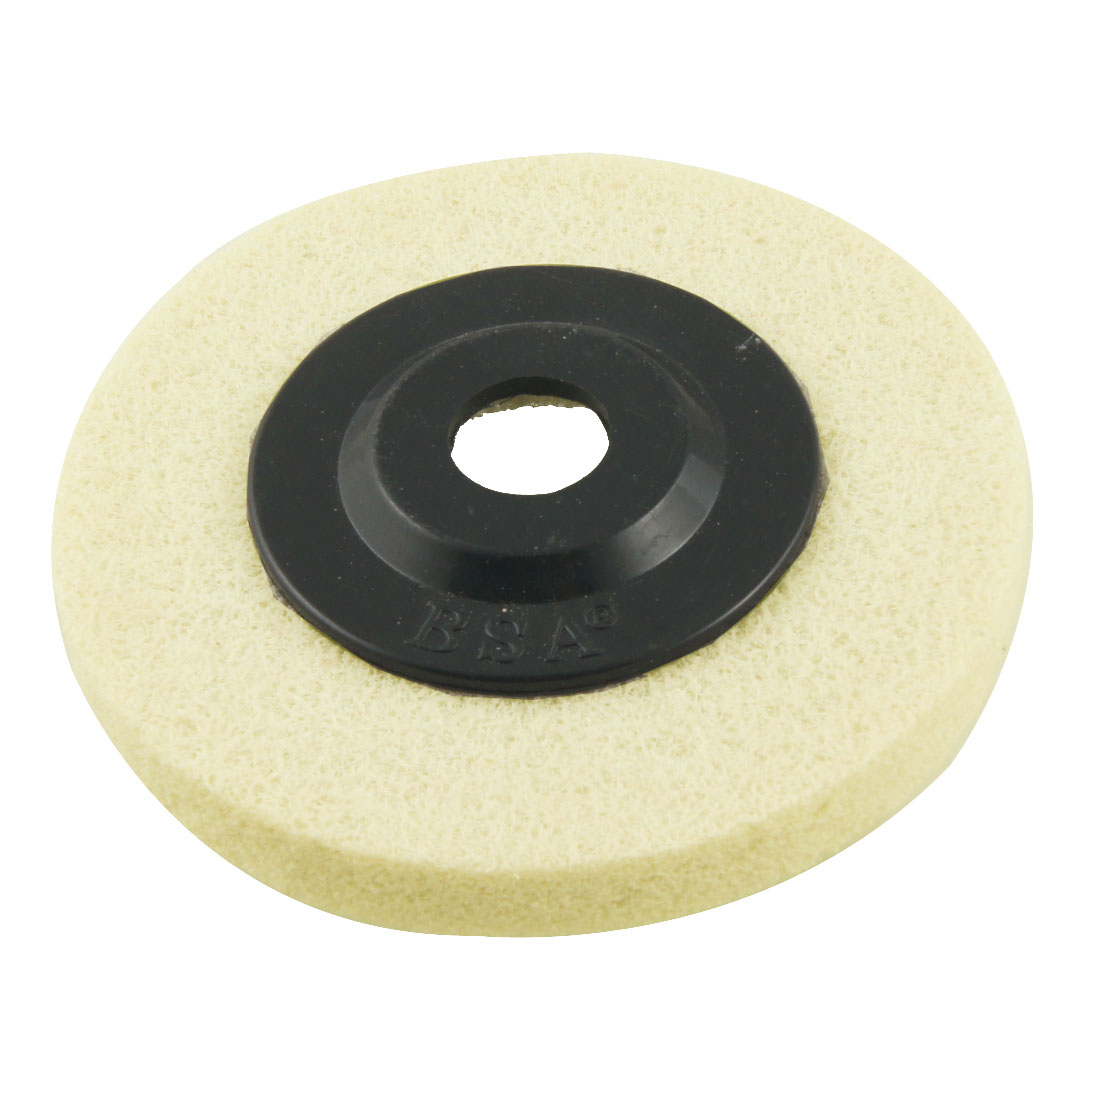 "Plastic Lid 4"" Outside Dia Nylon Polishing Metal Grinding Wheel White"